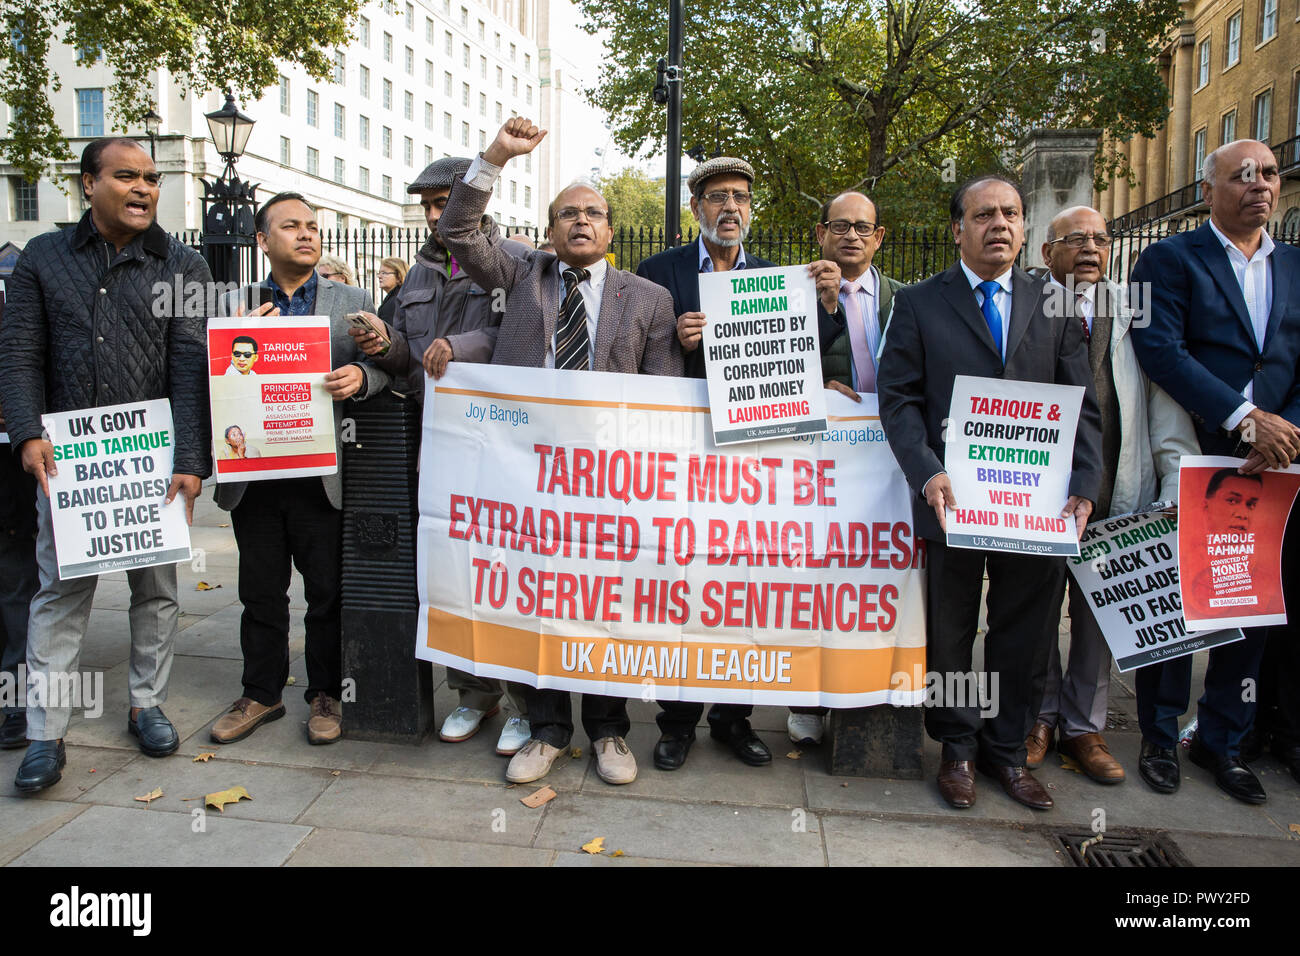 London, UK. 18th October, 2018. Campaigners from the UK Awami League, supporters of the current Government of Bangladesh under Prime Minister Sheikh Hasina, protest in Whitehall opposite Downing Street to call on the British Government to extradite Tarique Rahman, acting chairman of Bangladesh Nationalist Party, to Bangladesh. Tarique Rahman successfully applied for political asylum in the UK in 2008 and has since been granted indefinite leave to remain. Credit: Mark Kerrison/Alamy Live News Stock Photo